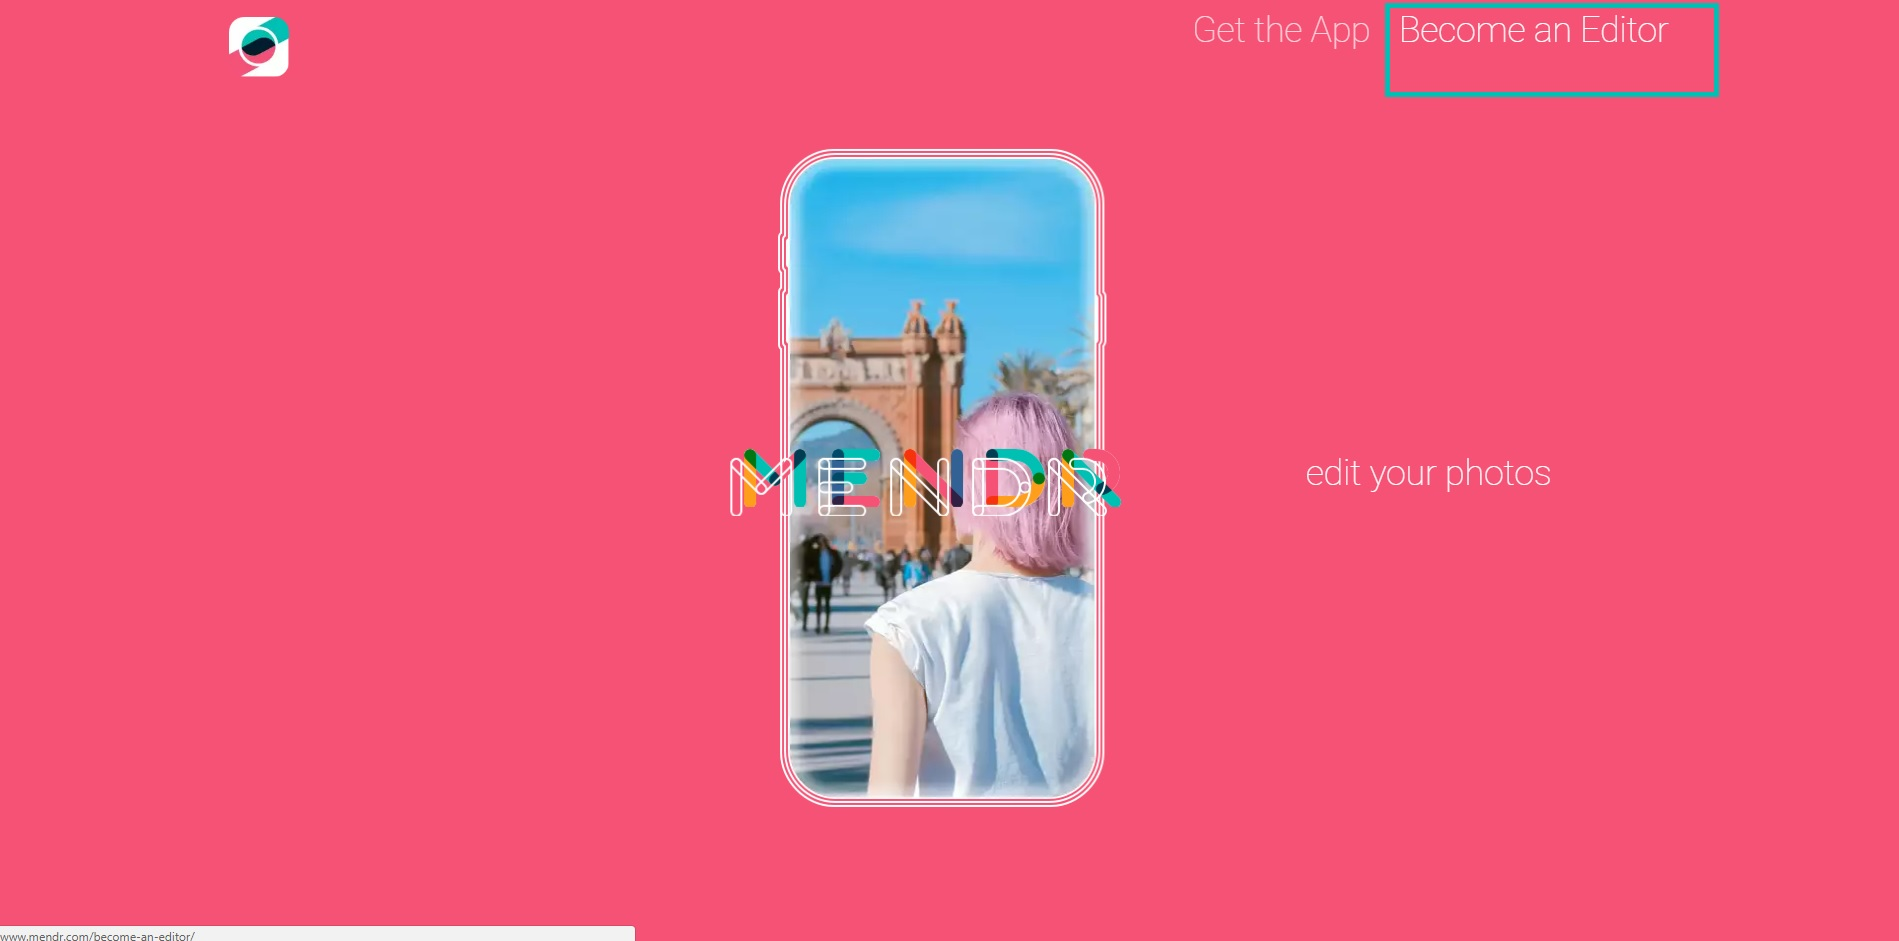 Edit Photos And Earn Money With Mendr